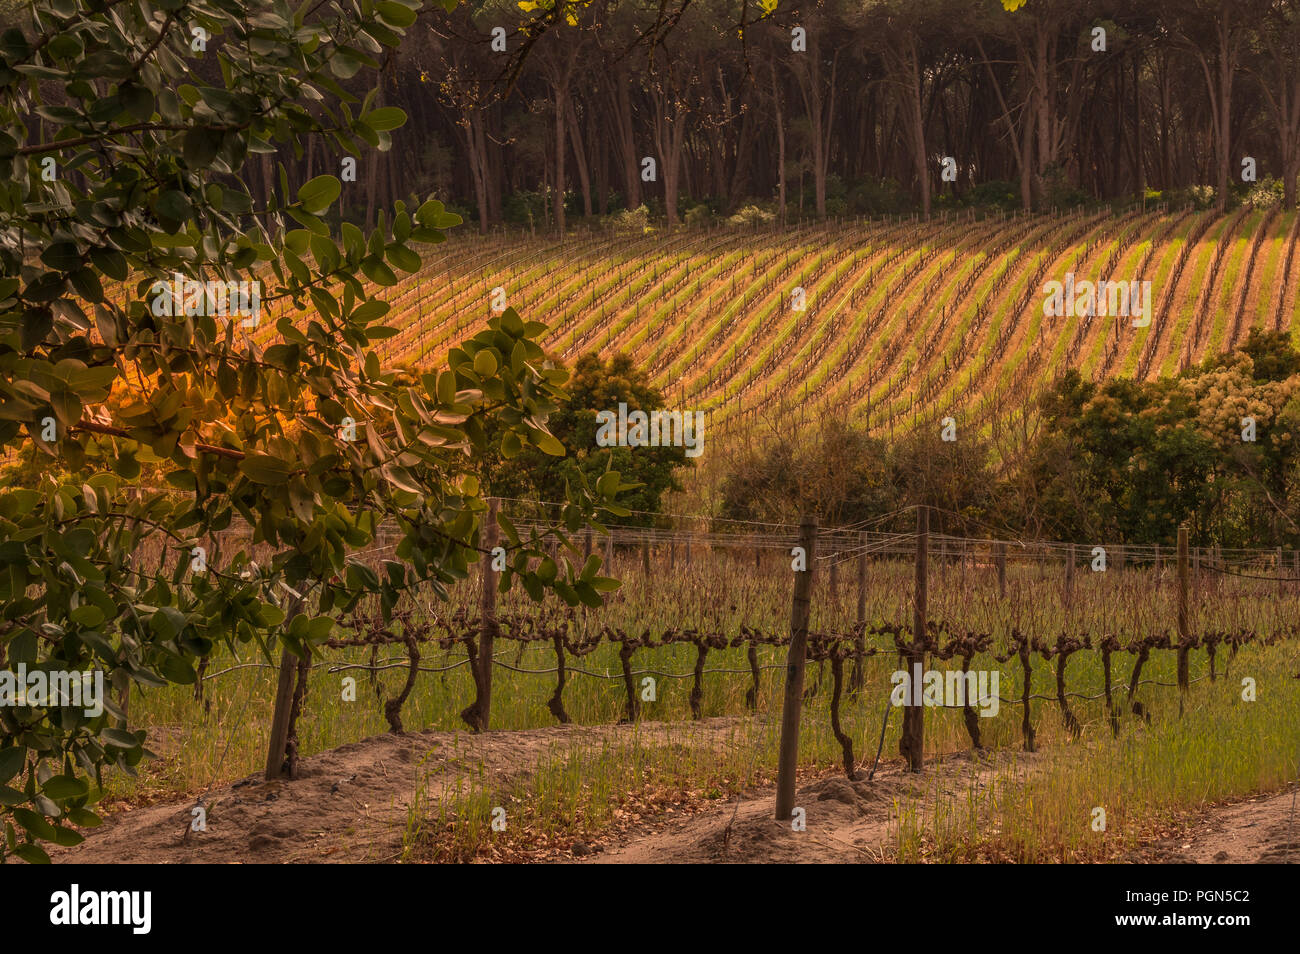 A quiet spot above the vineyards for some me time - Stock Image